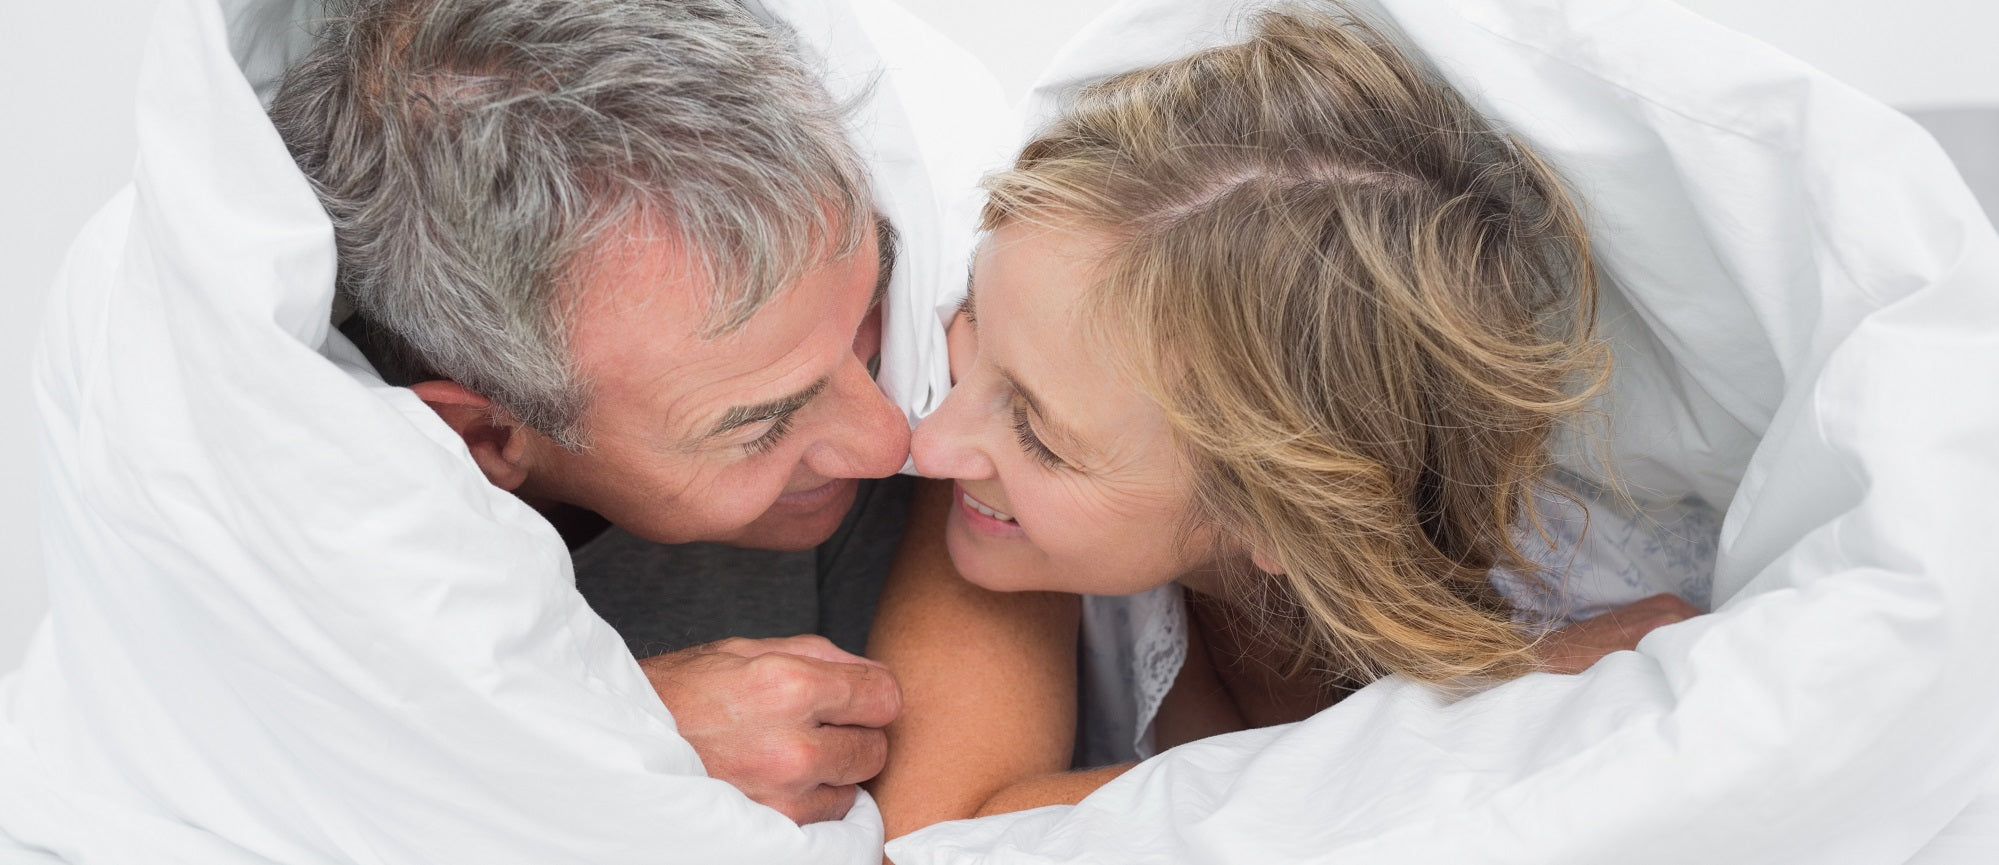 conversation is important for sex over 60